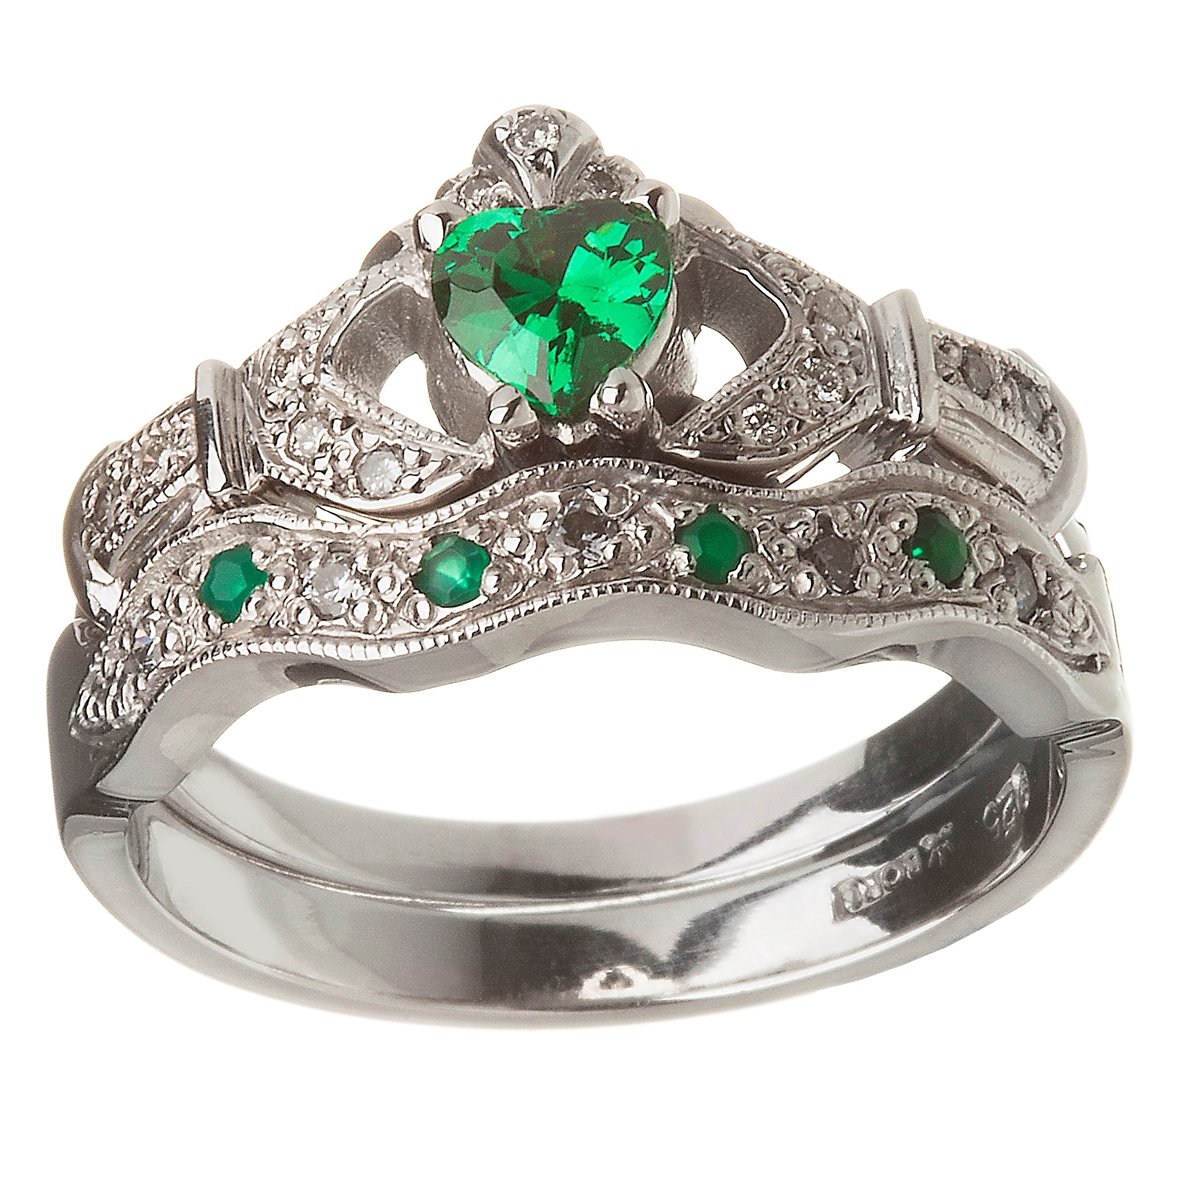 14k white gold emerald set heart claddagh ring & wedding ring set